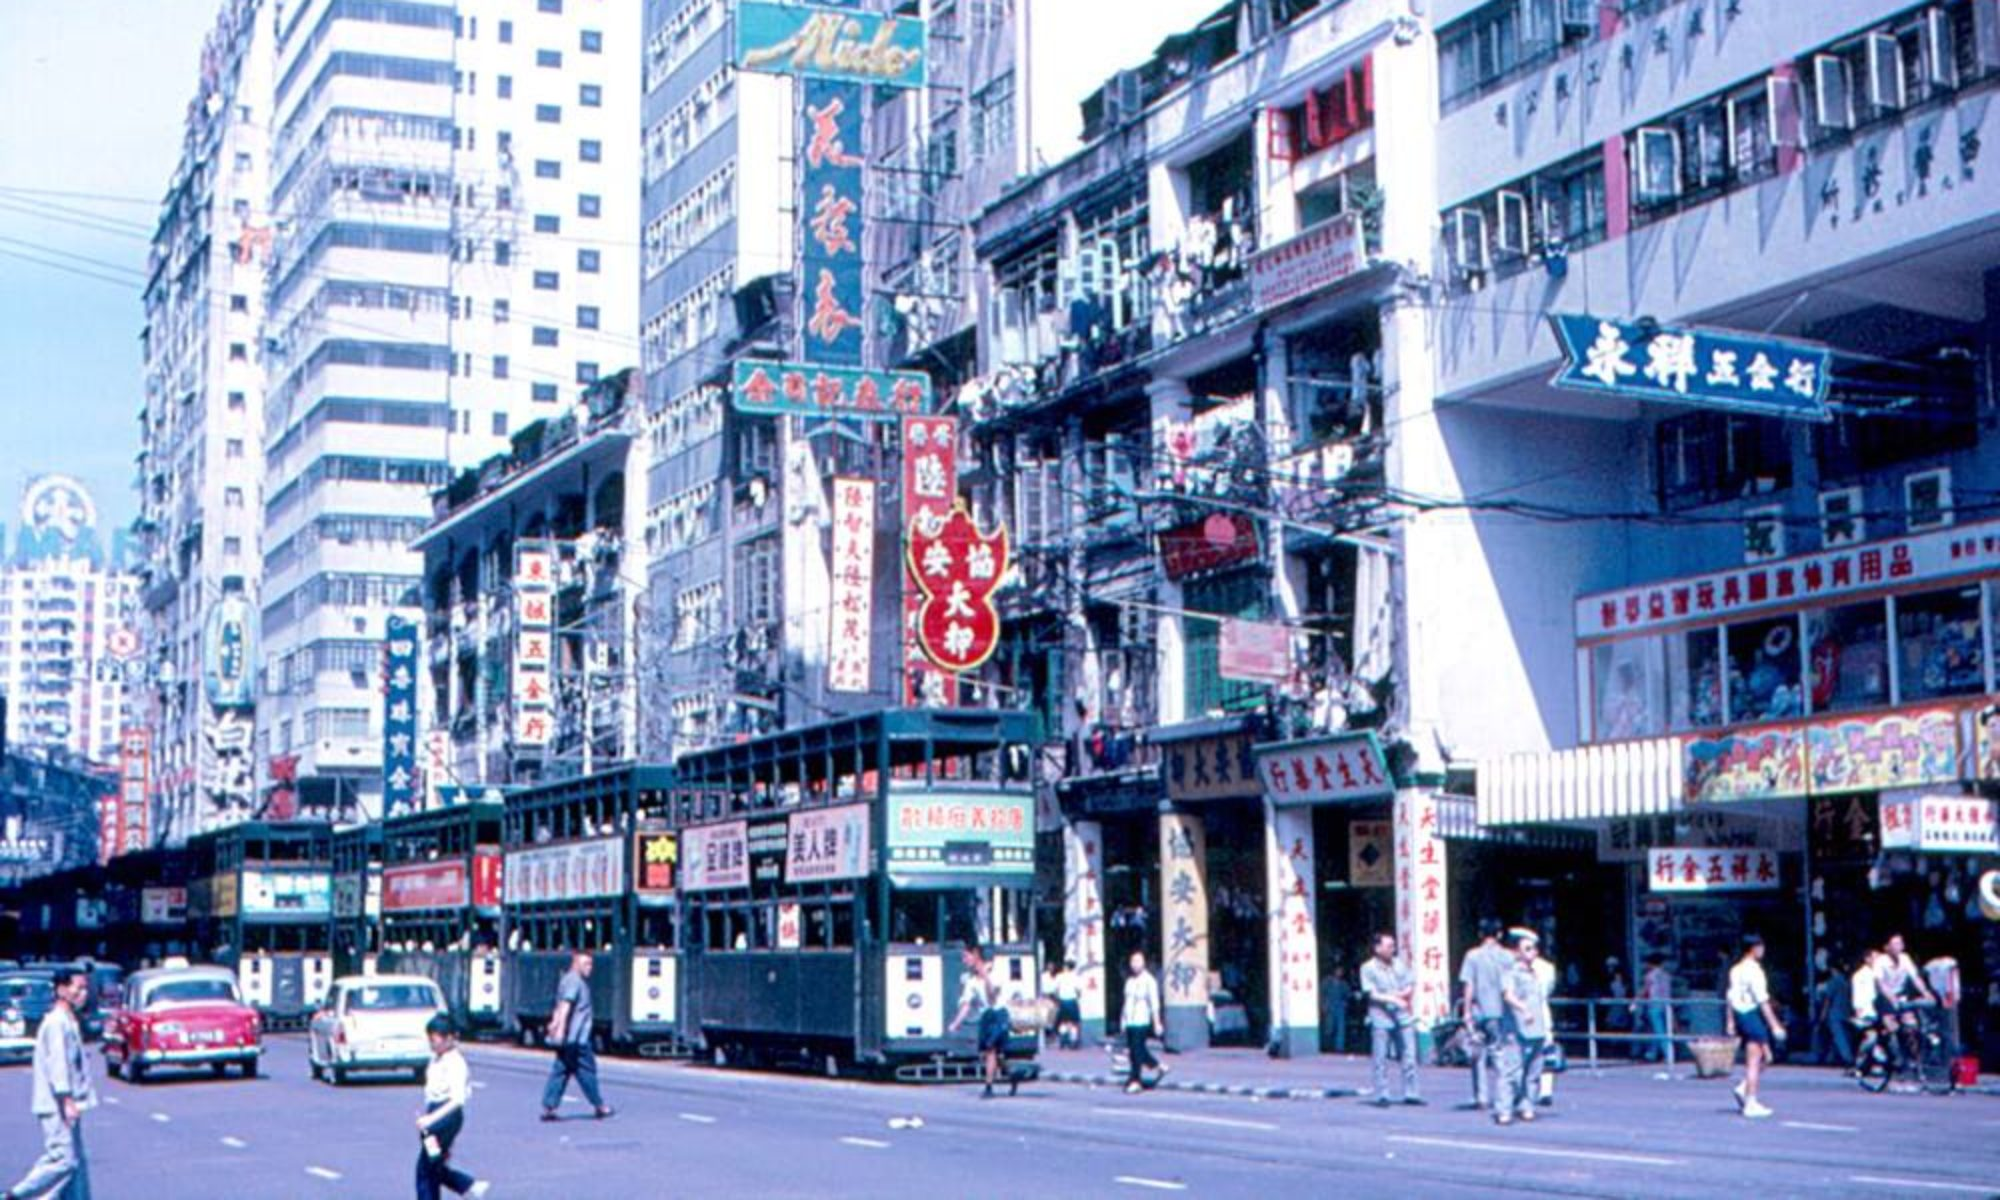 香港電車文化保育學會 Hong Kong Trams Culture Preservation Society